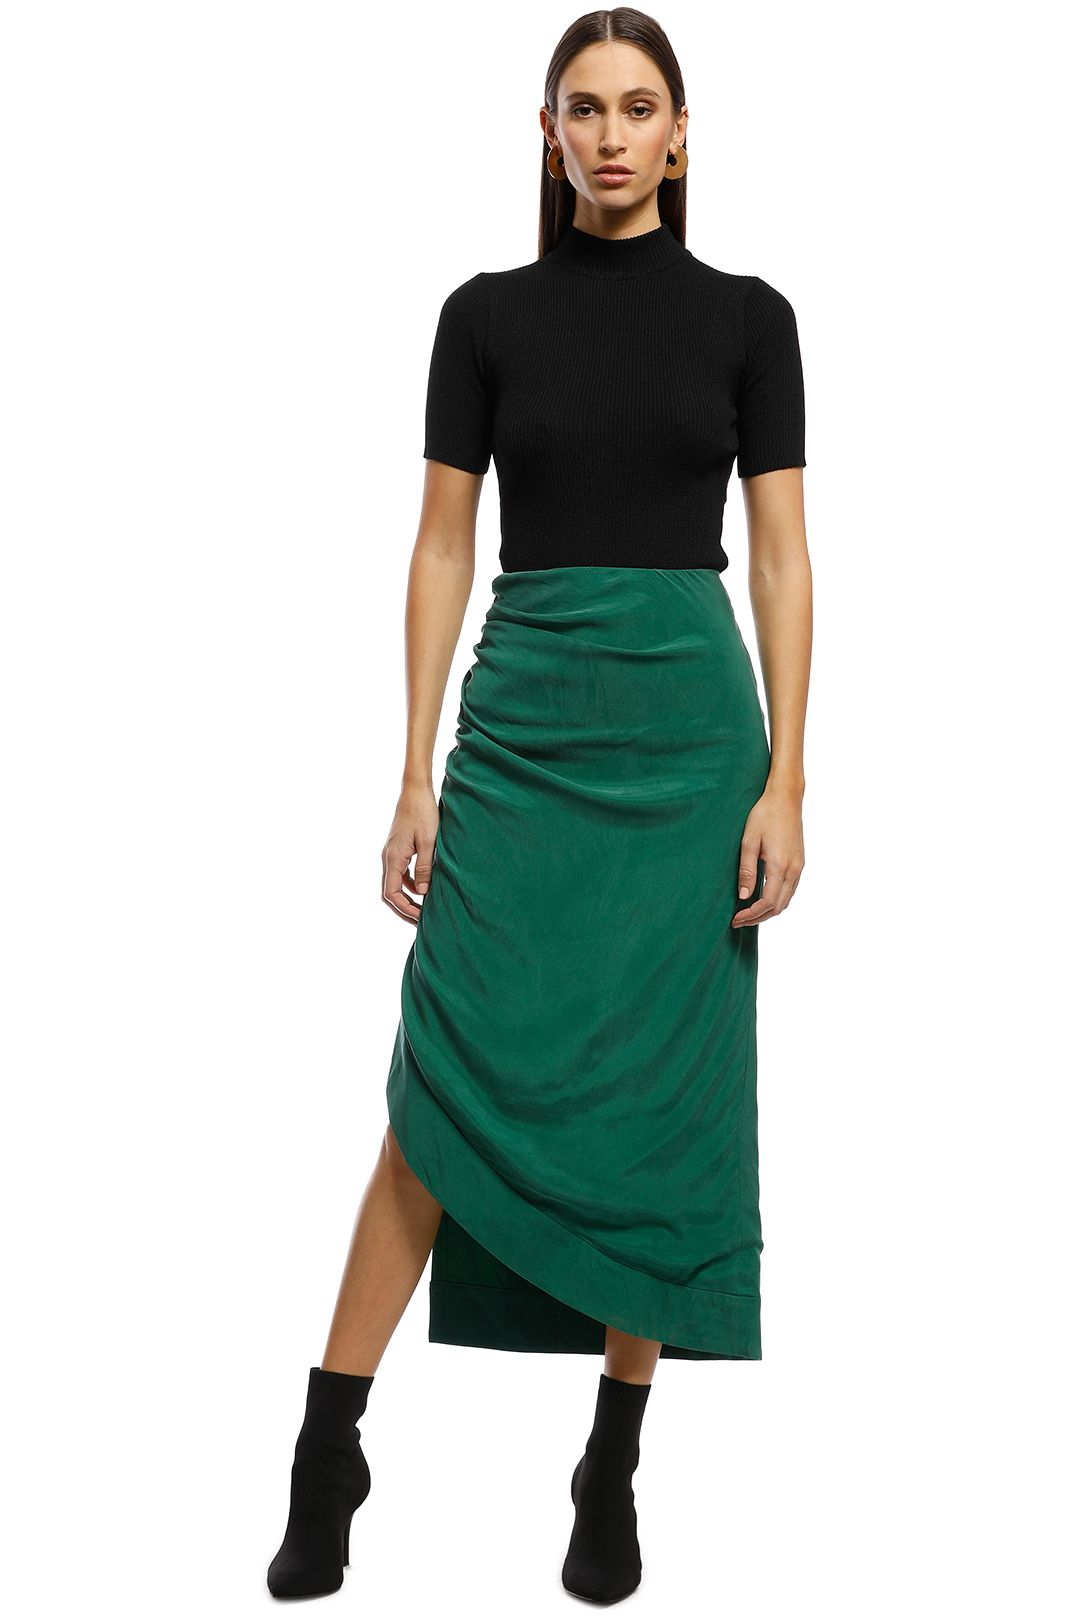 CMEO Collective - Ended Up Here Skirt - Green - Front